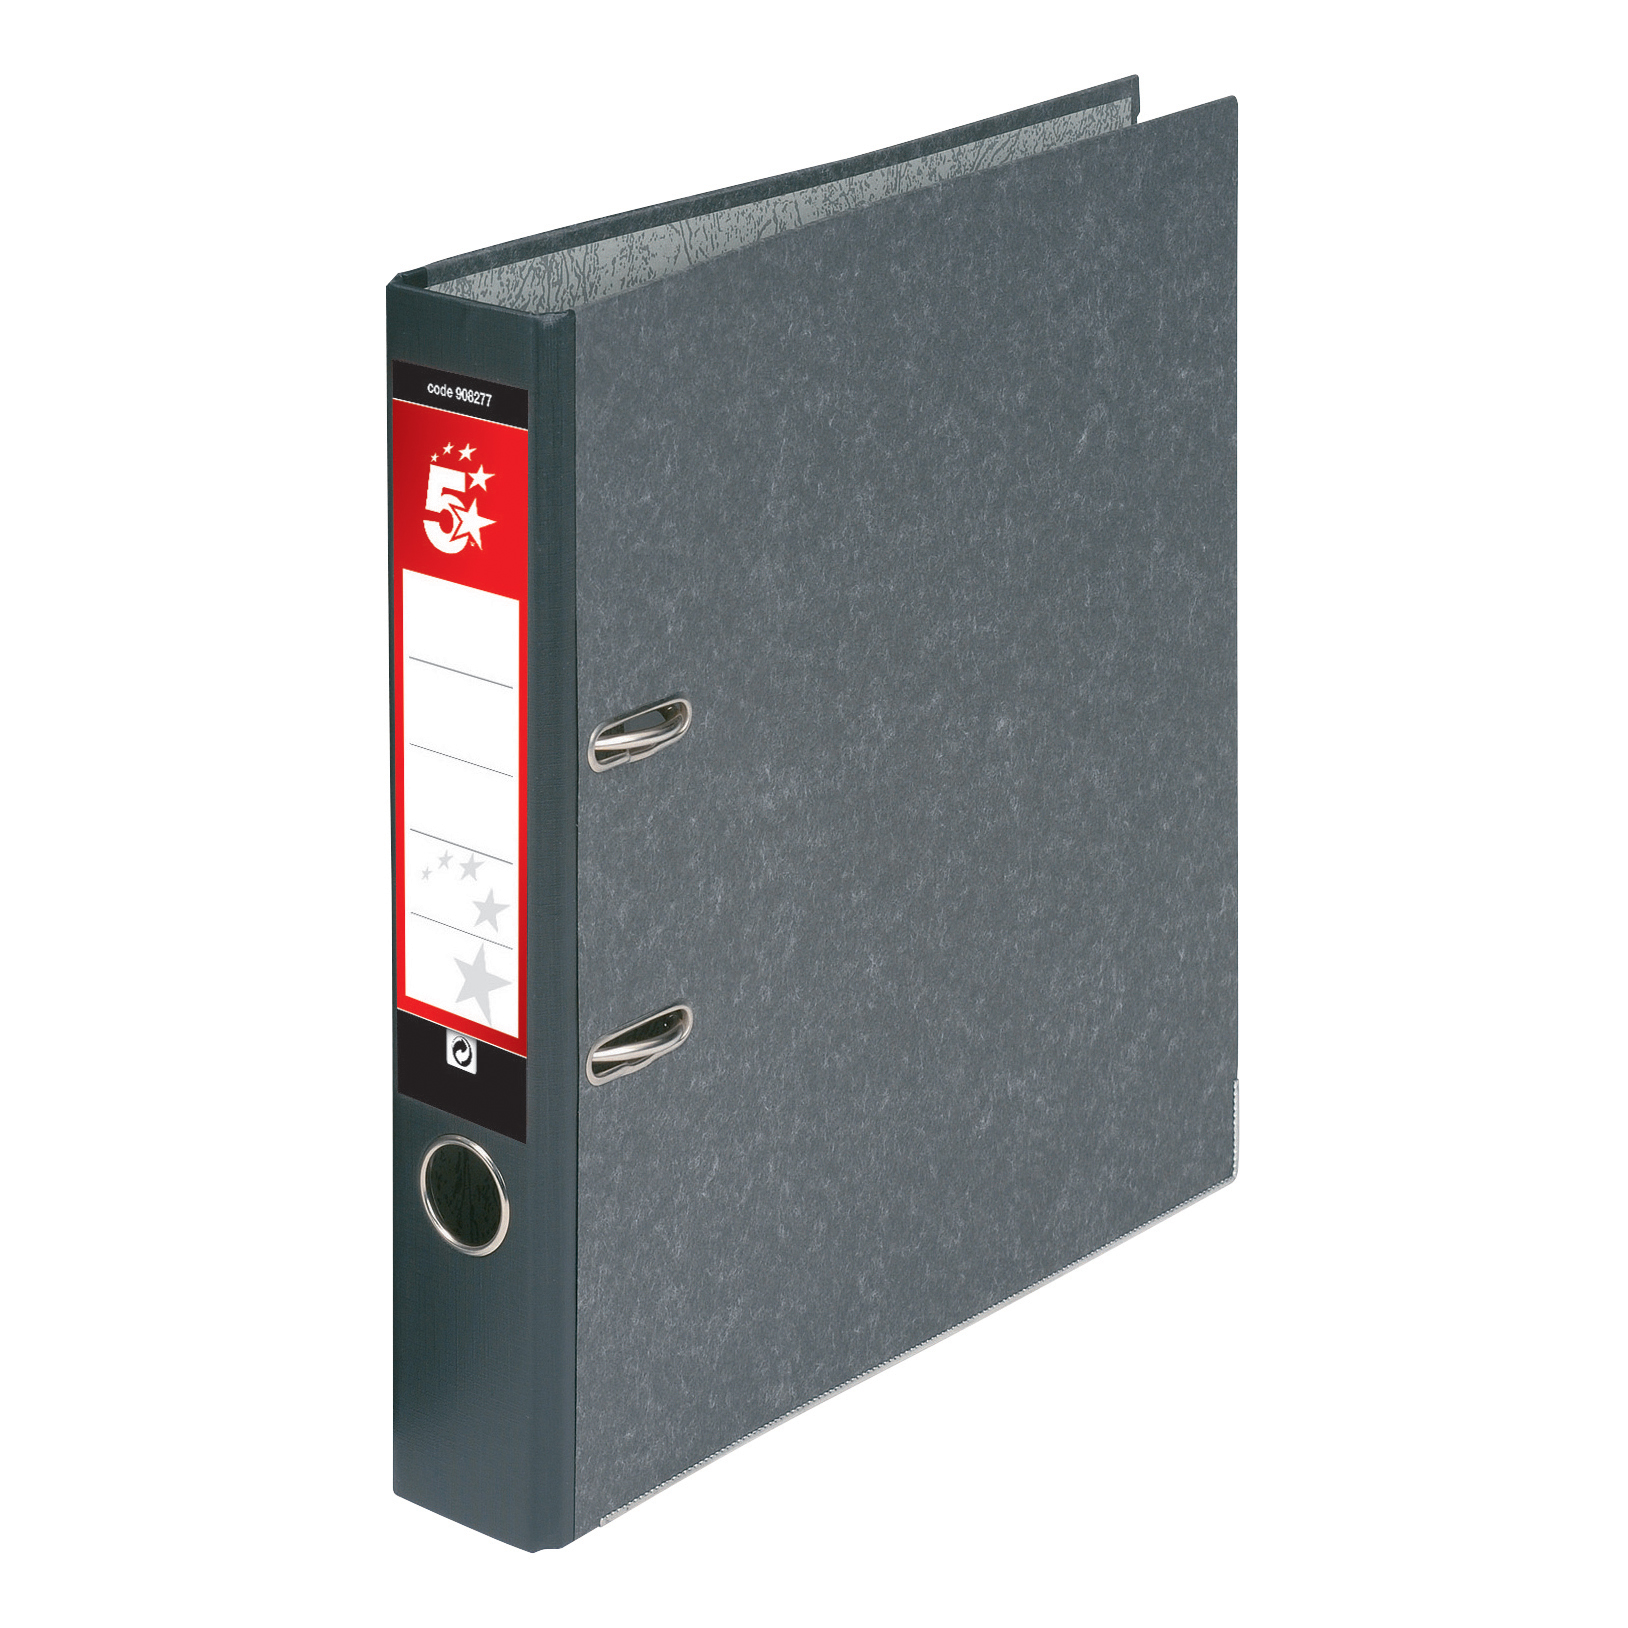 Lever Arch Files 5 Star Office Mini Lever Arch File 50mm Spine A4 Cloudy Grey Pack 10